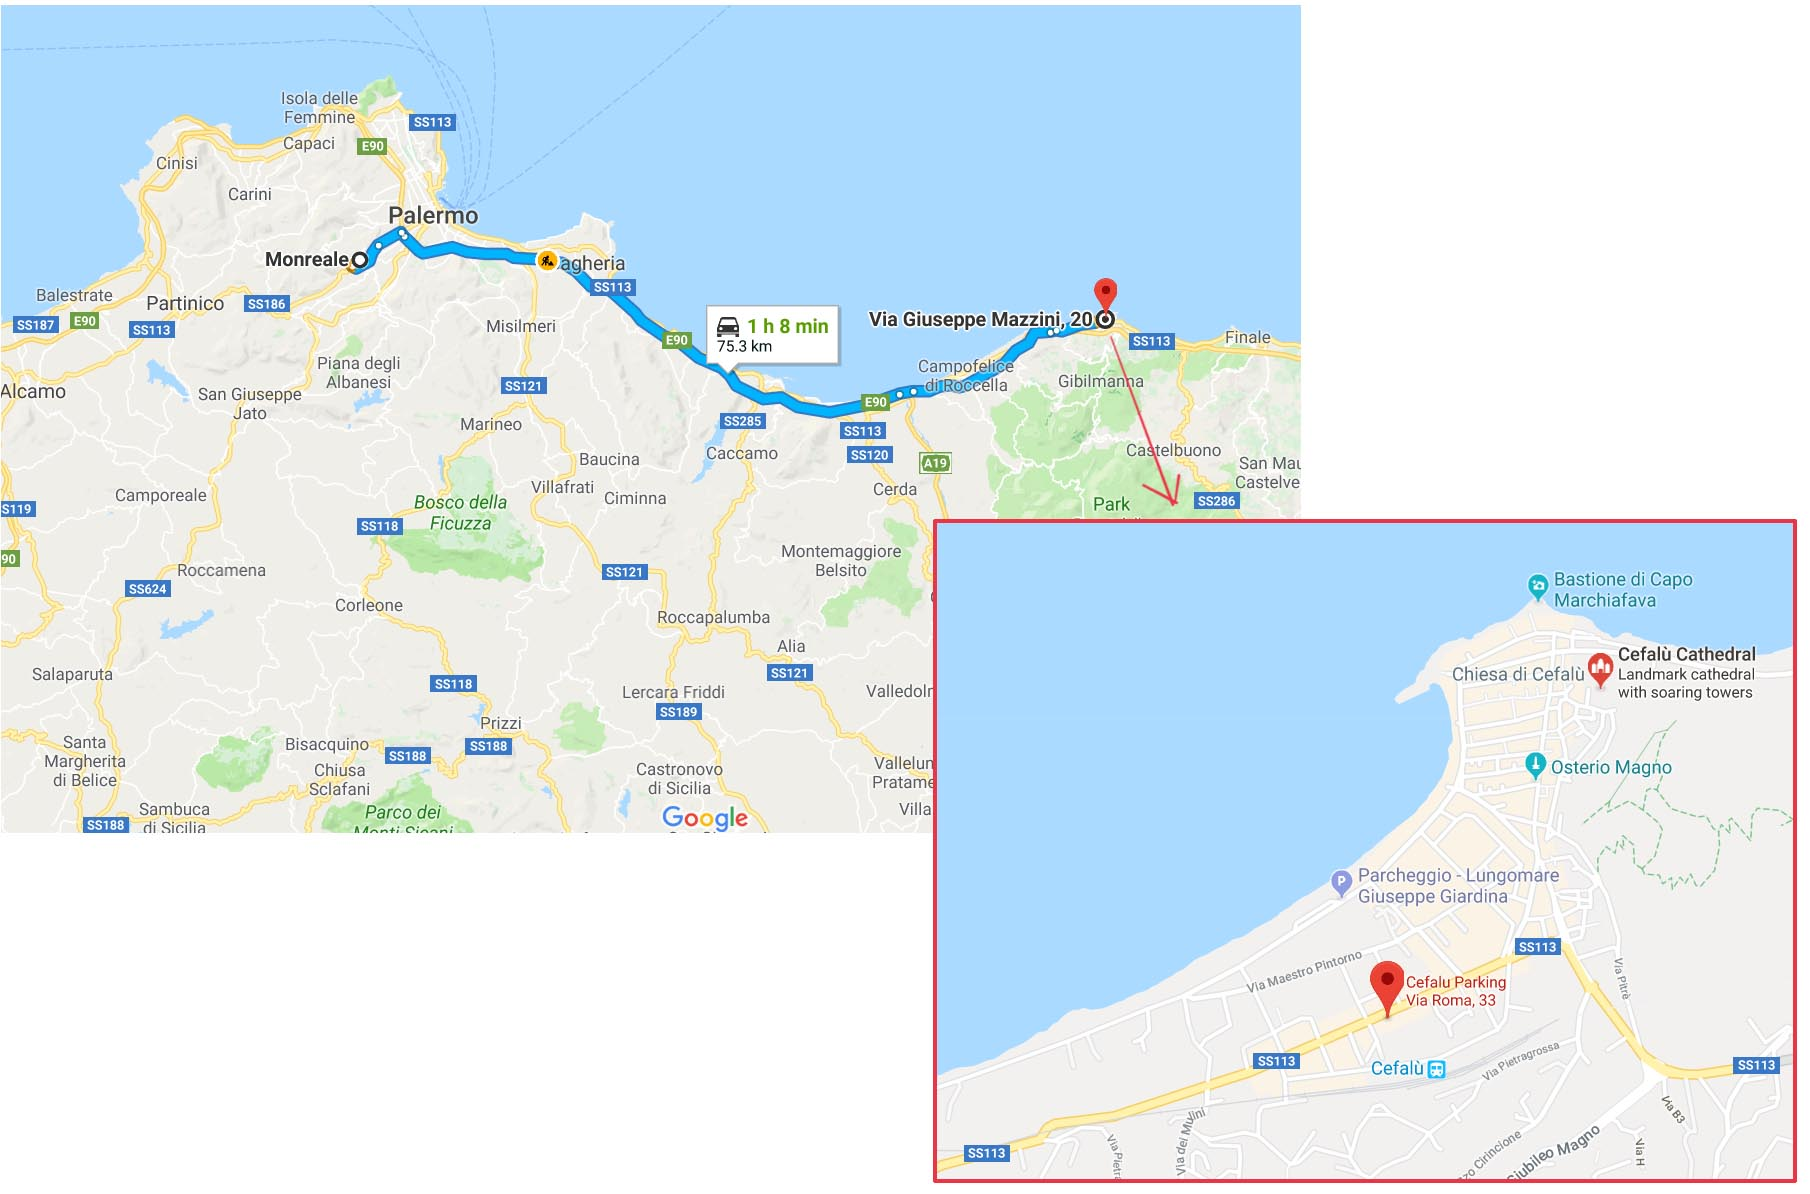 Route to Cefalu and parking